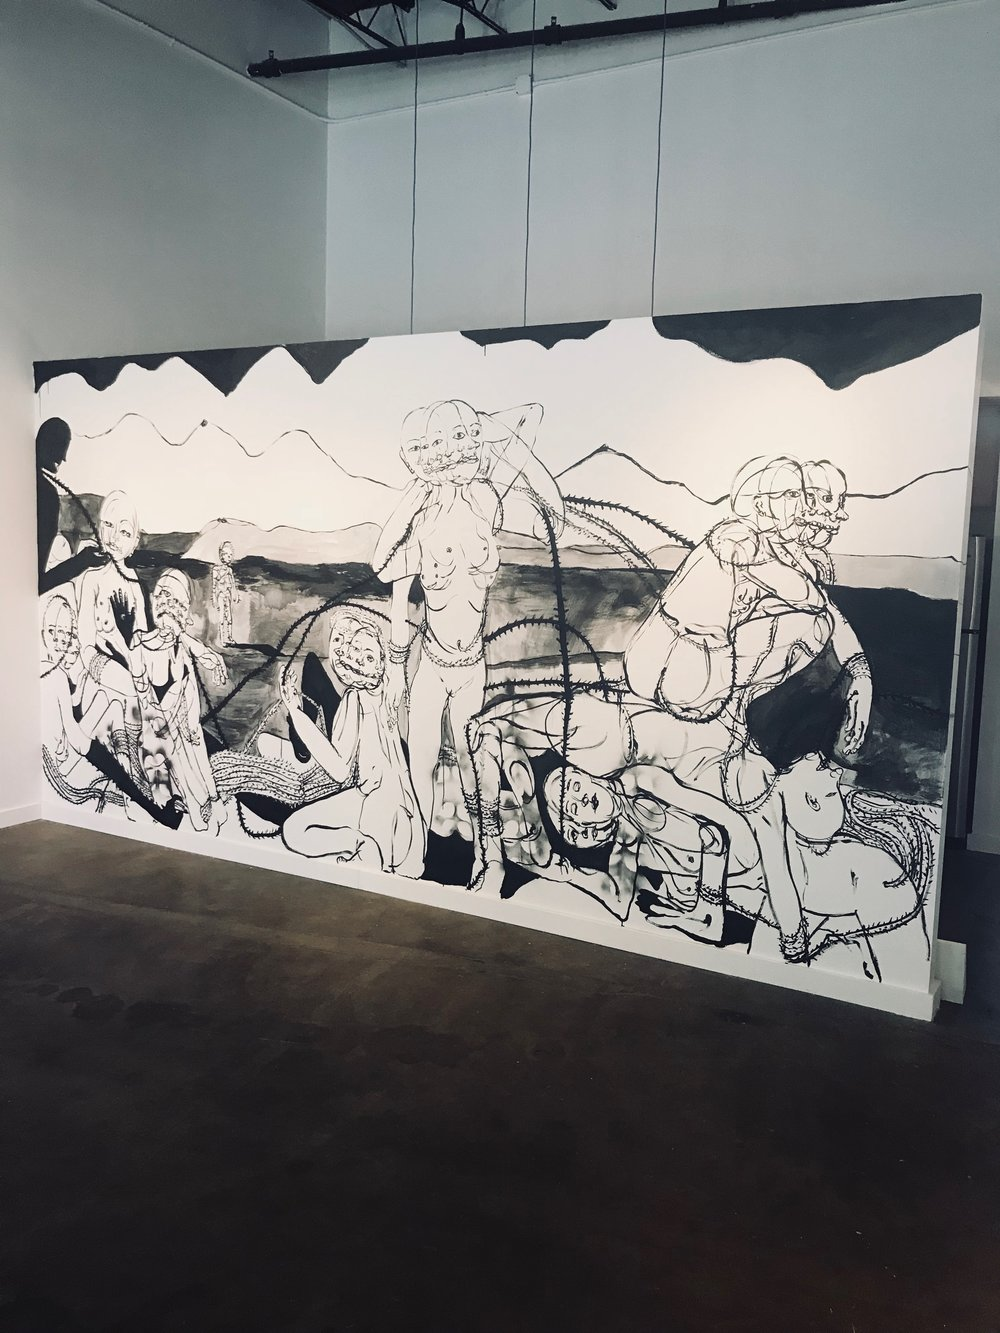 The bathers, bathing  , 2018  Ink wash and spray paint on drywall  96 x 180 in.